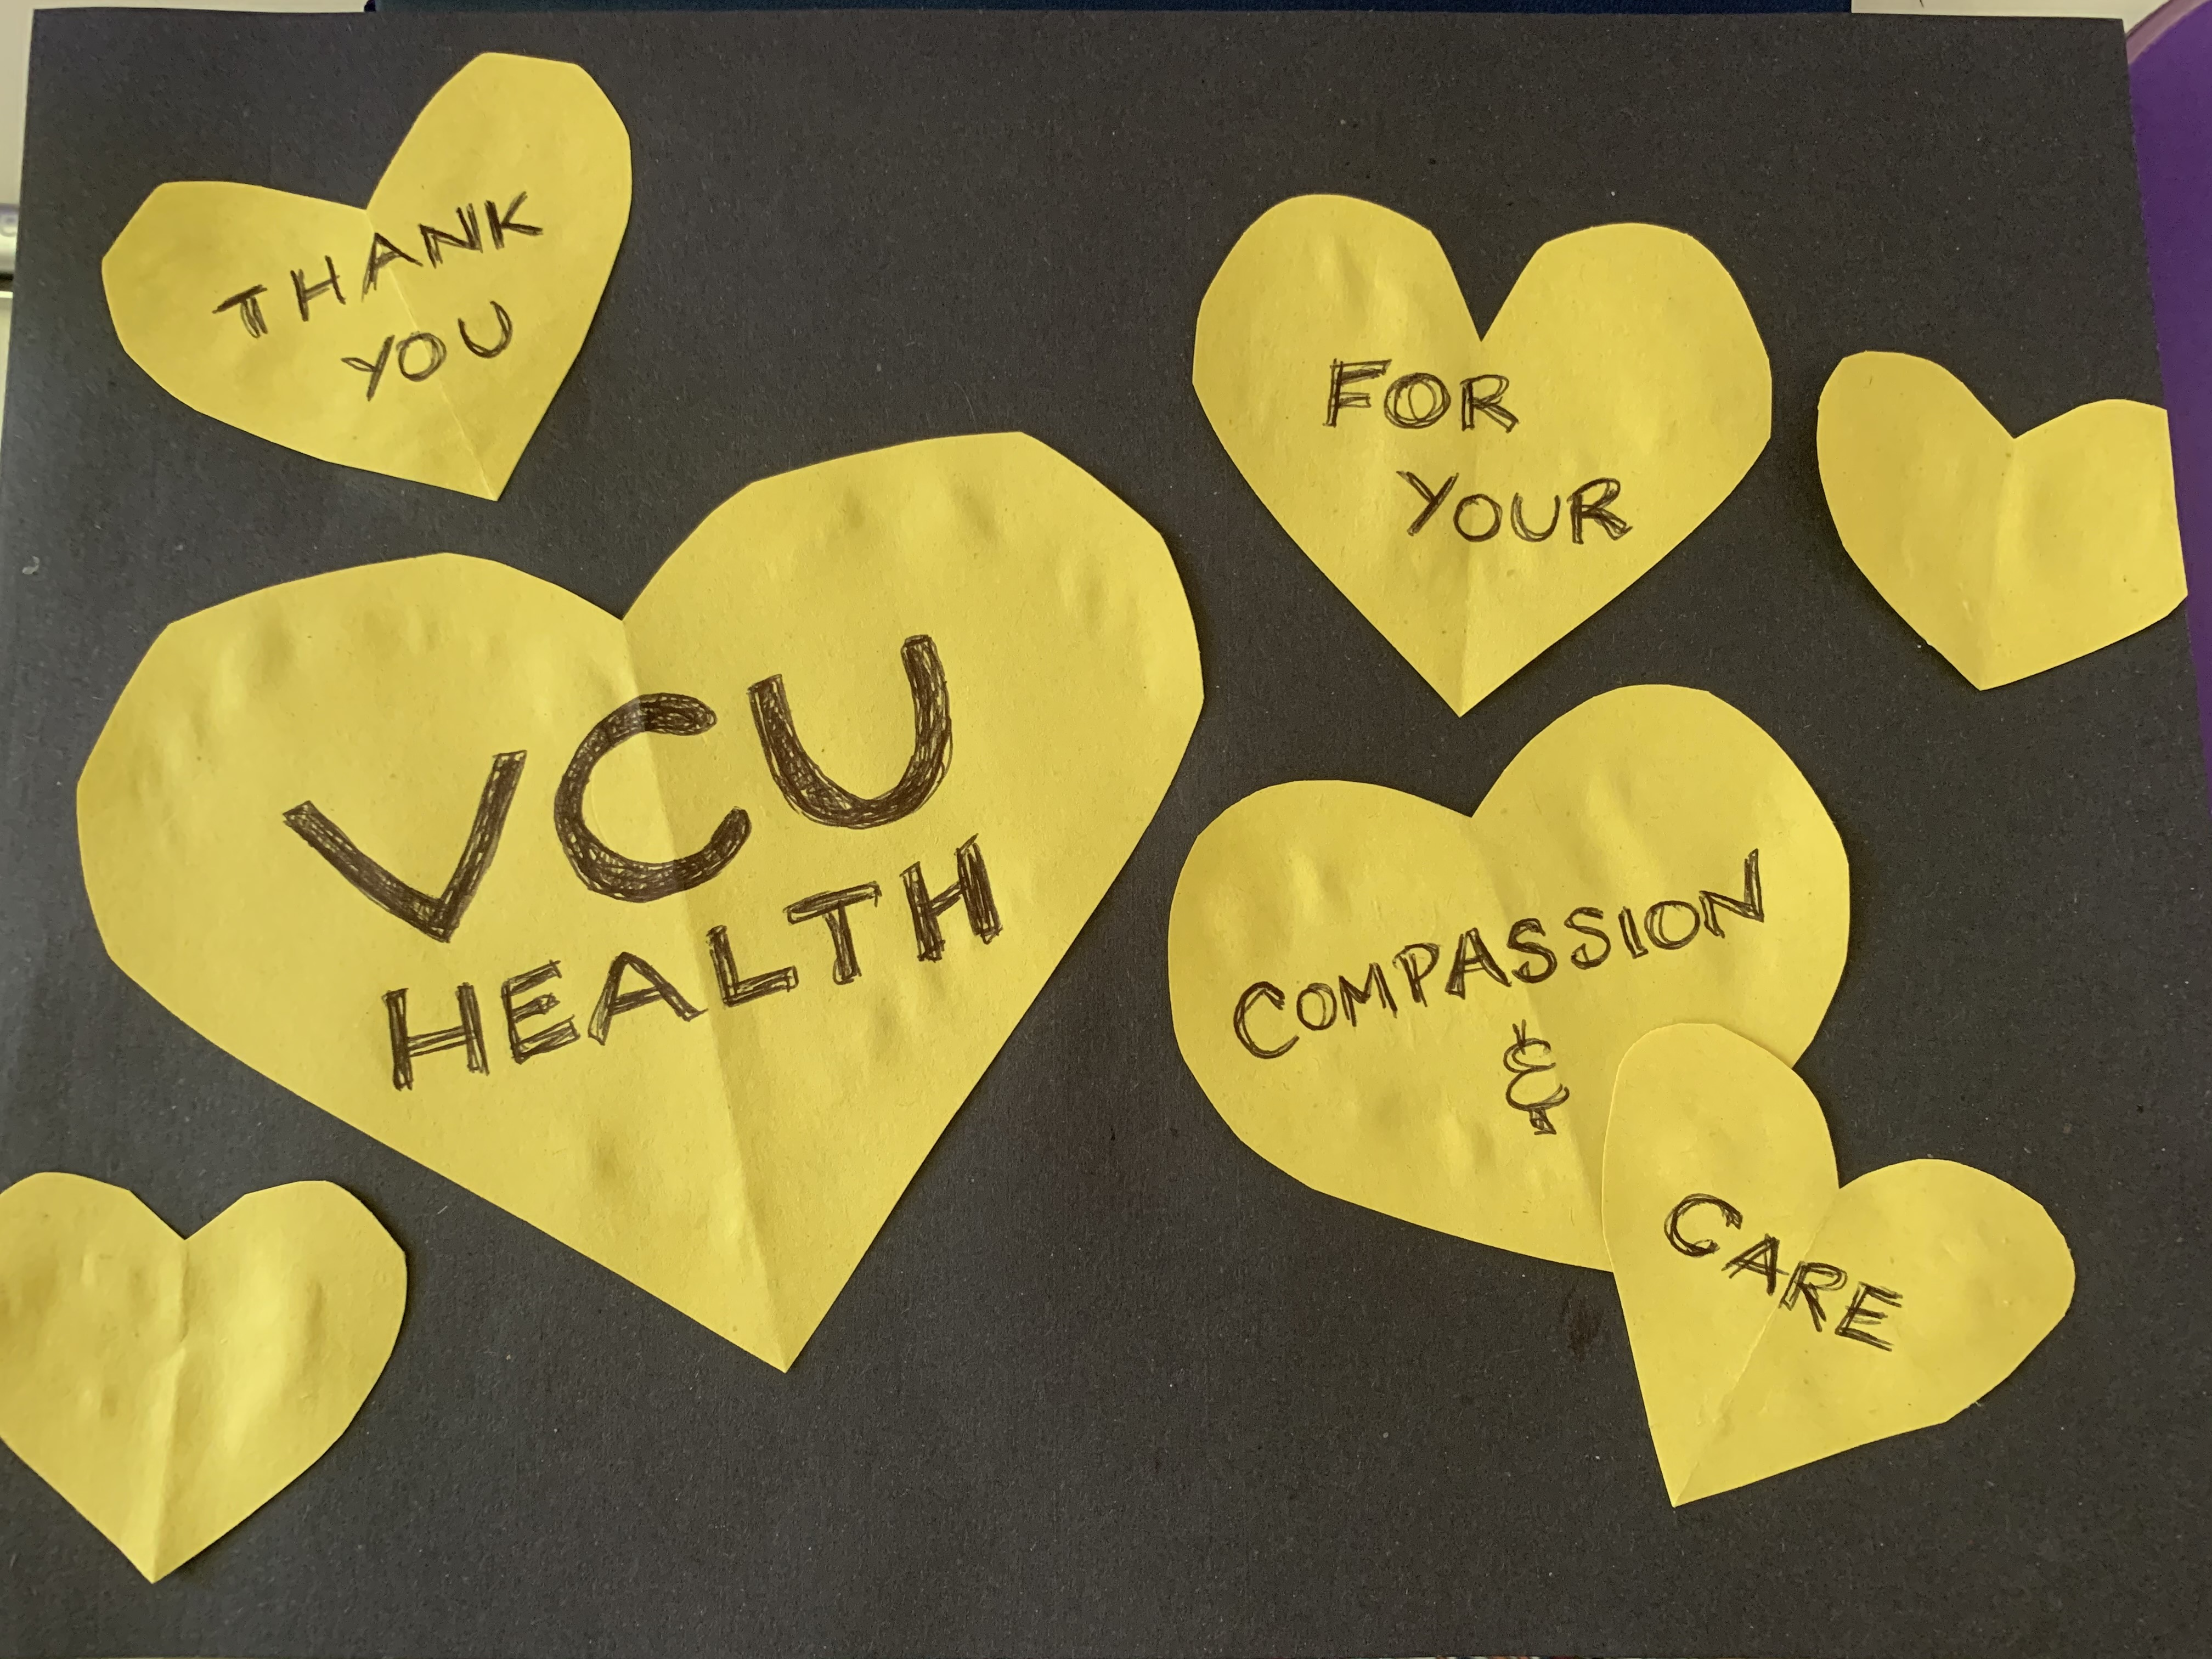 VCU librarians say thank you